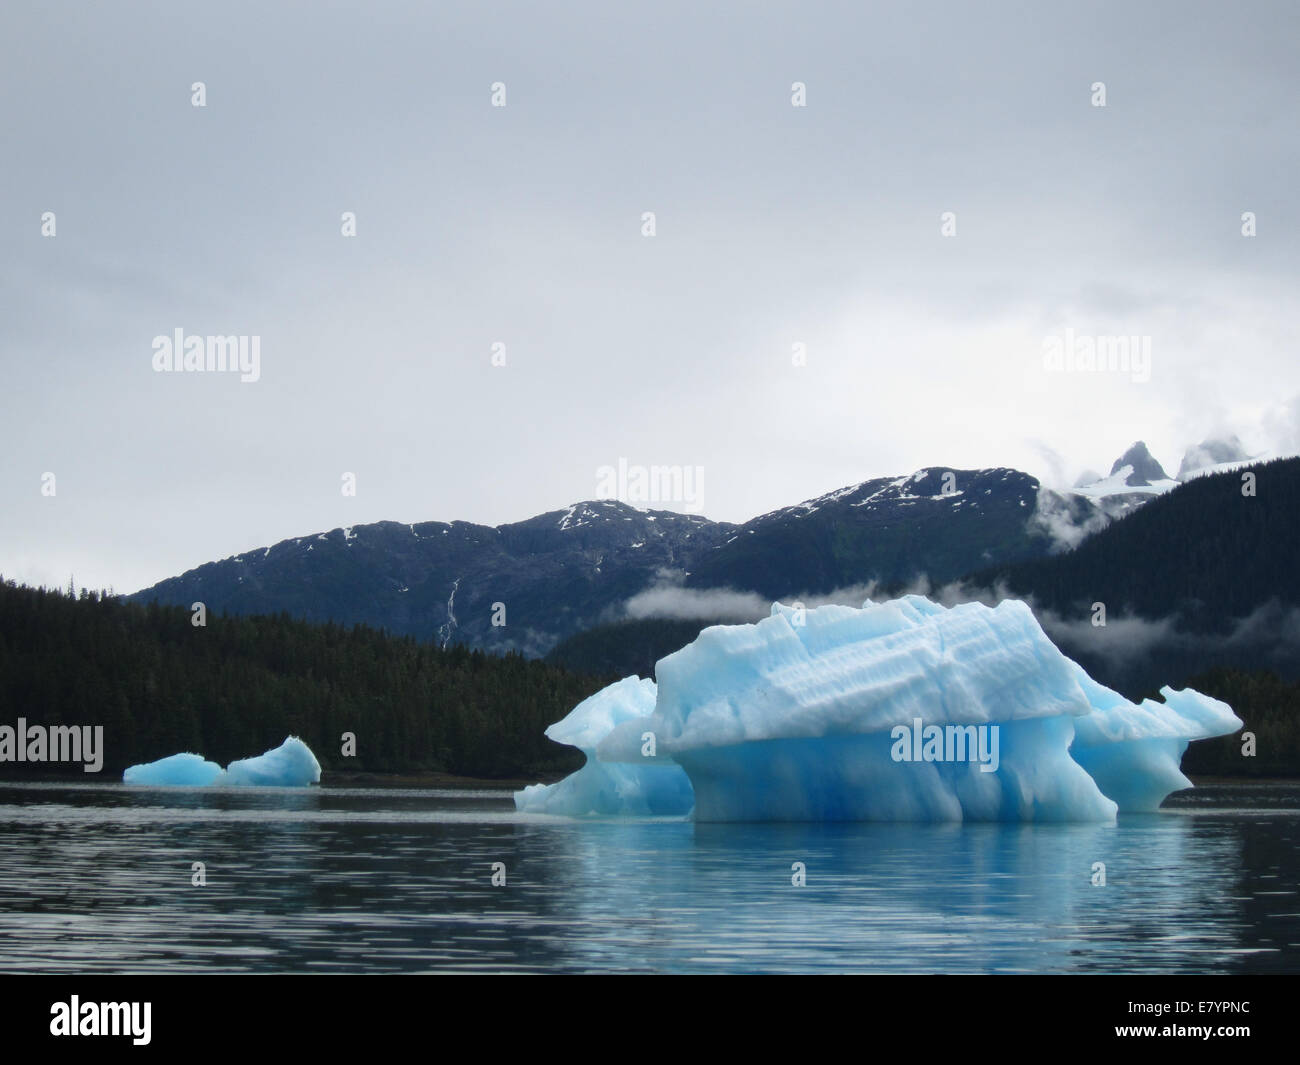 A pair of icebergs in LeConte Fjord, Tongass National Forest, Alaska. - Stock Image